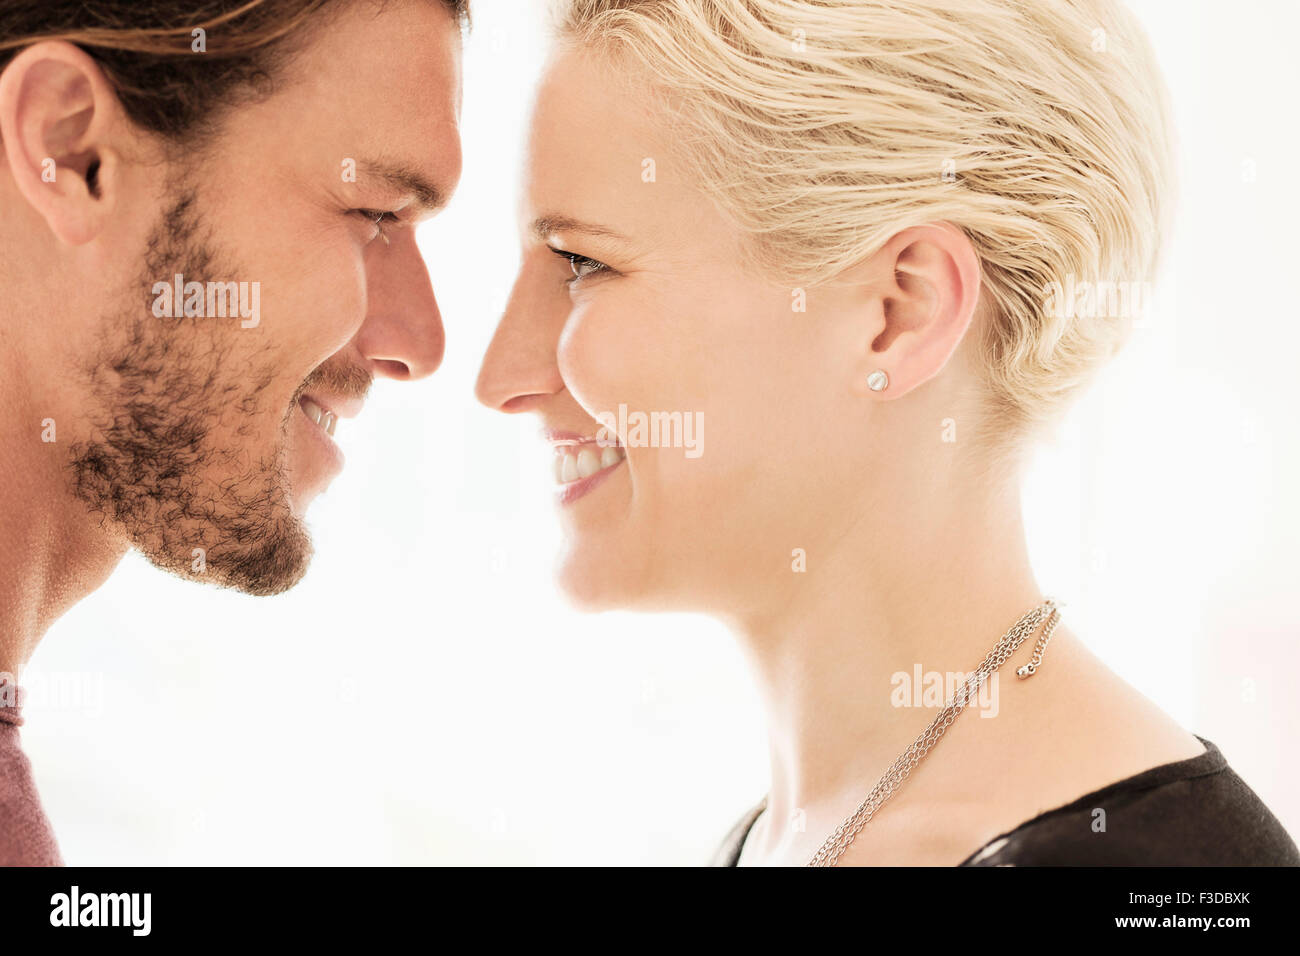 Couple face to face sur fond blanc Photo Stock